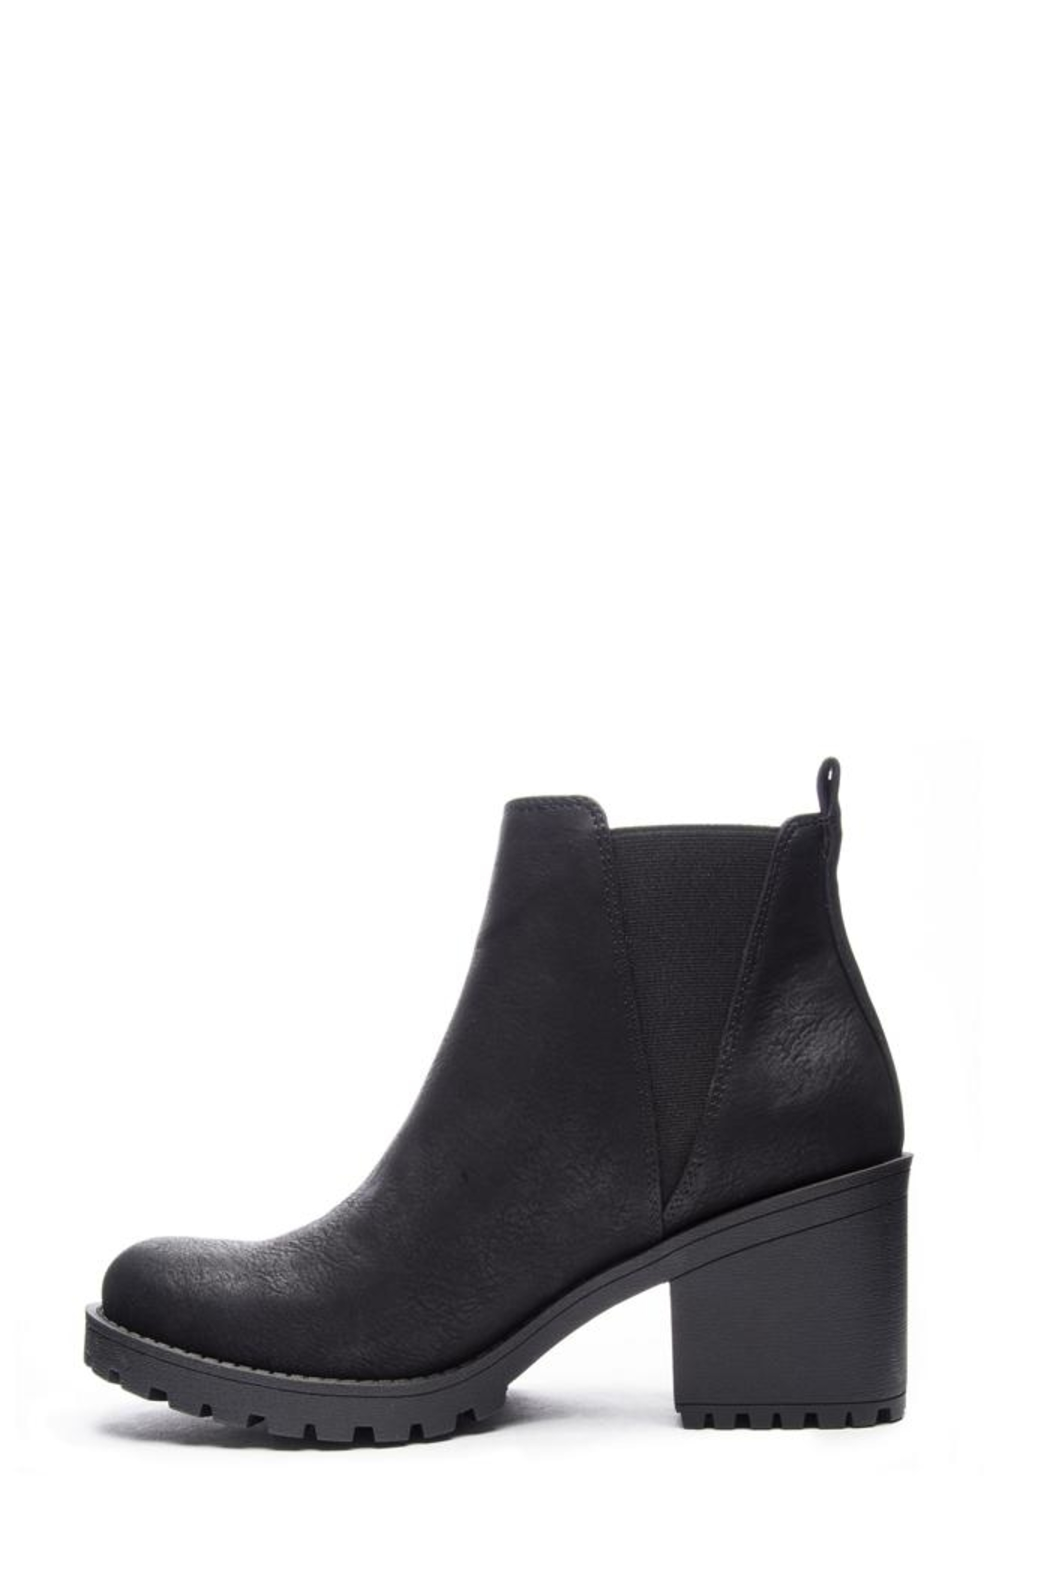 Dirty Laundry Lisbon Ankle Boot - Front Full Image